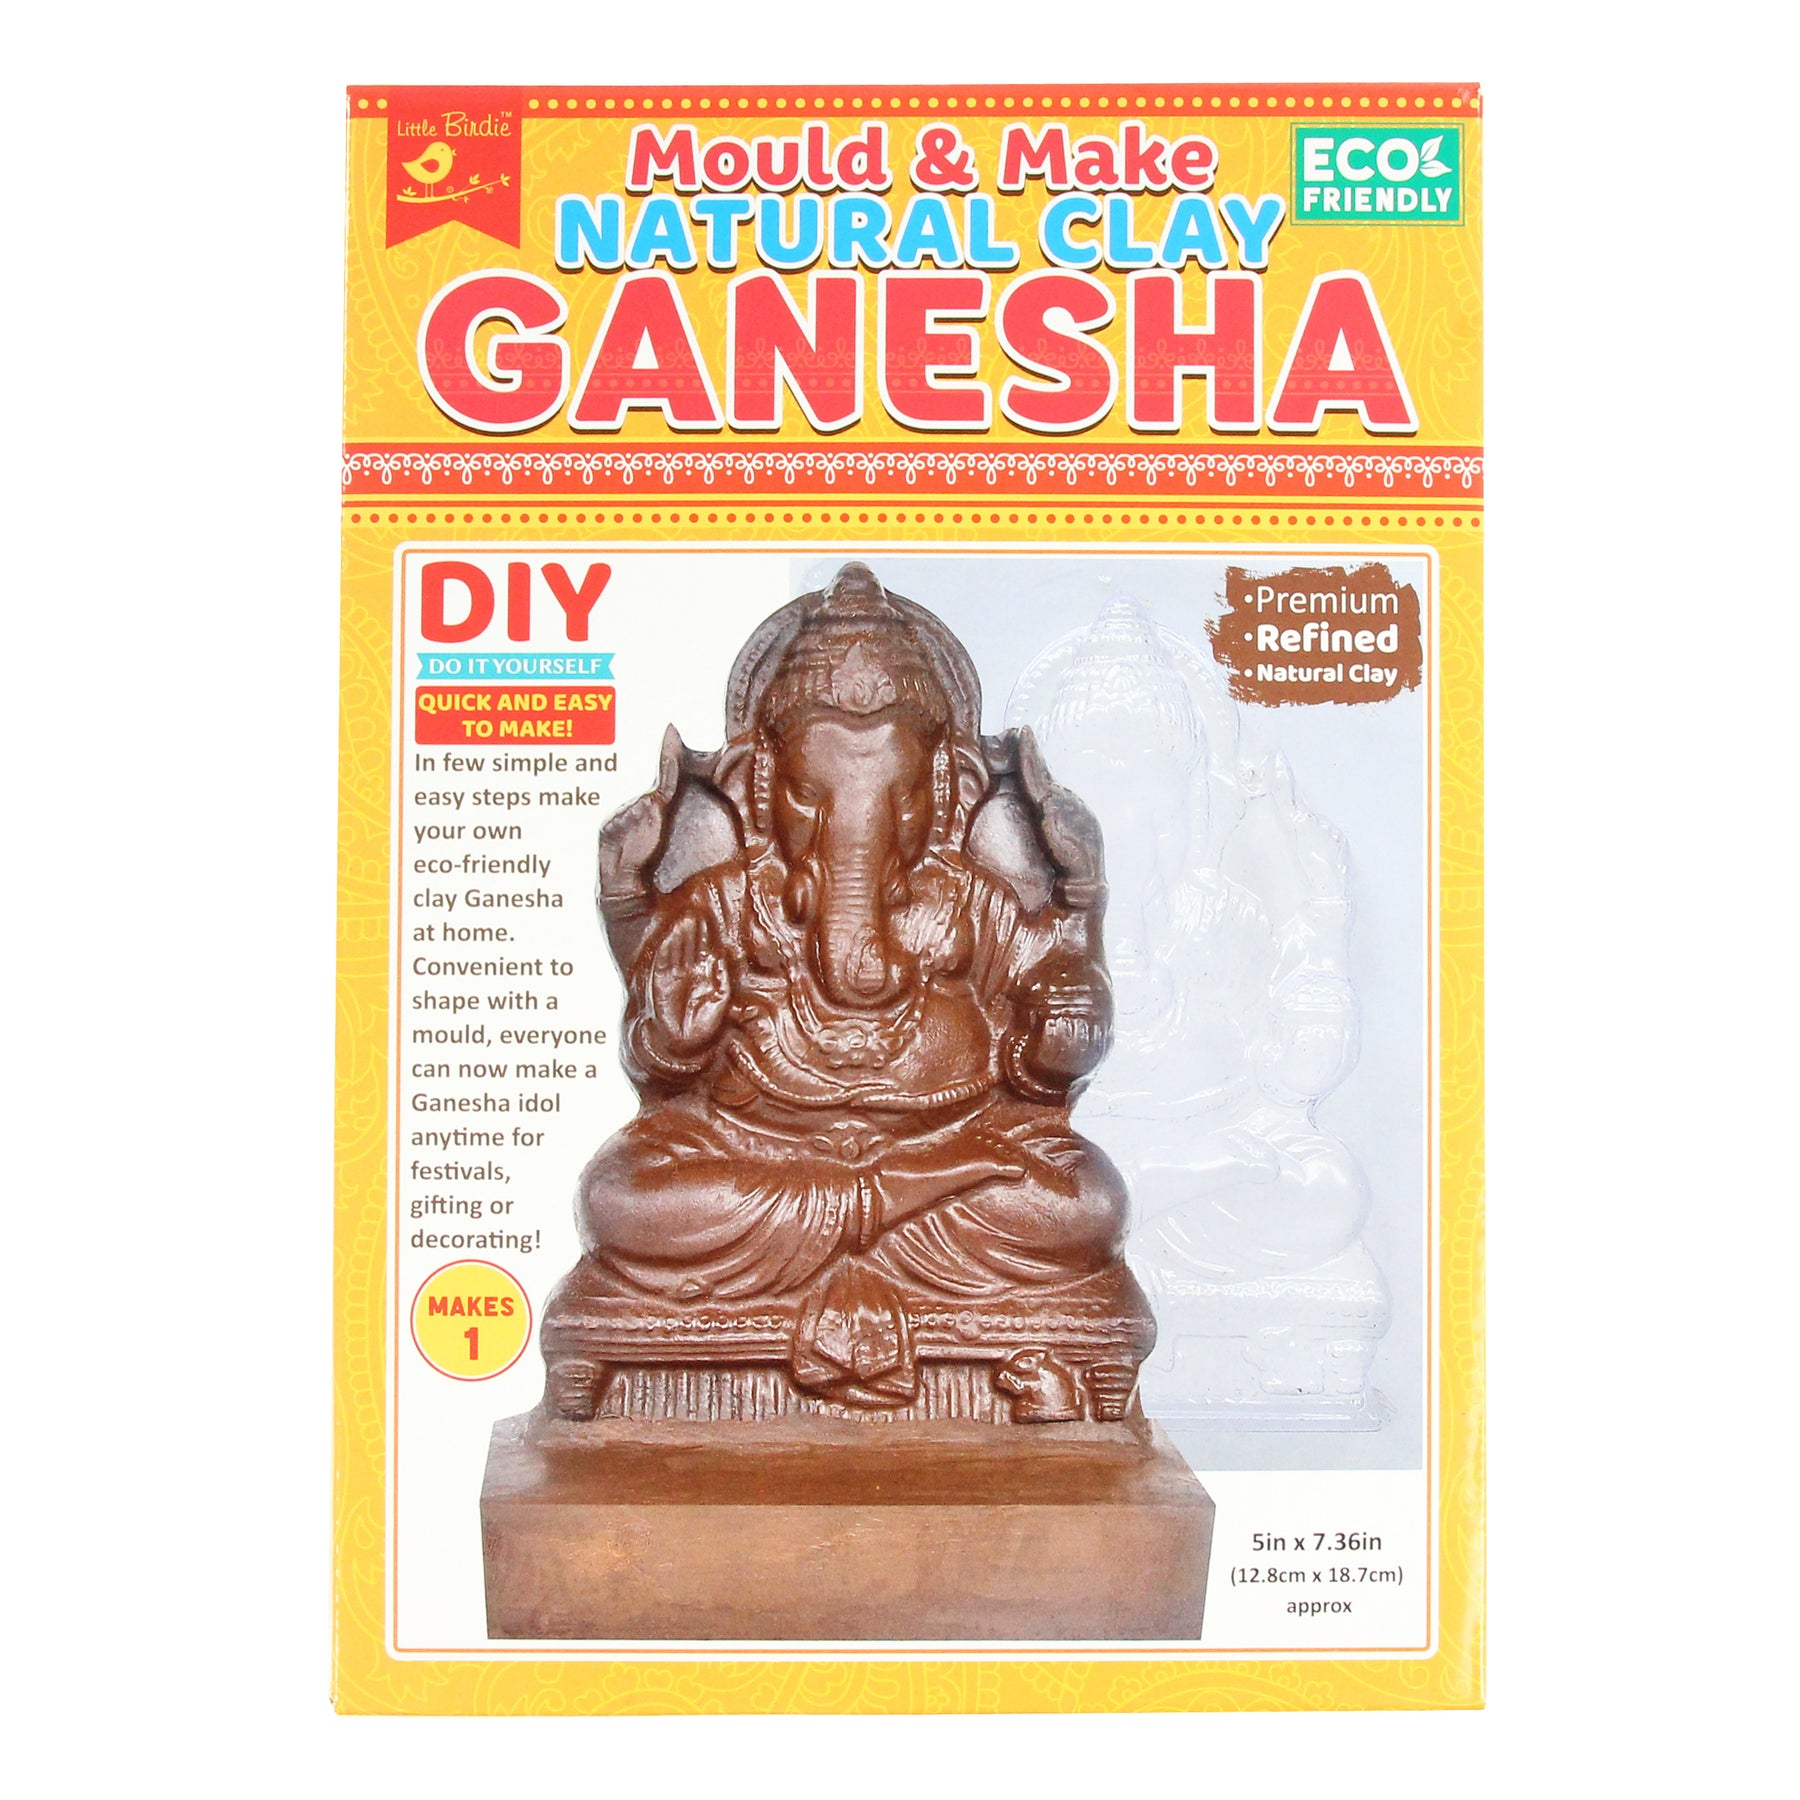 DIY Natural Clay Ganesha - Mould and Make – Itsy Bitsy